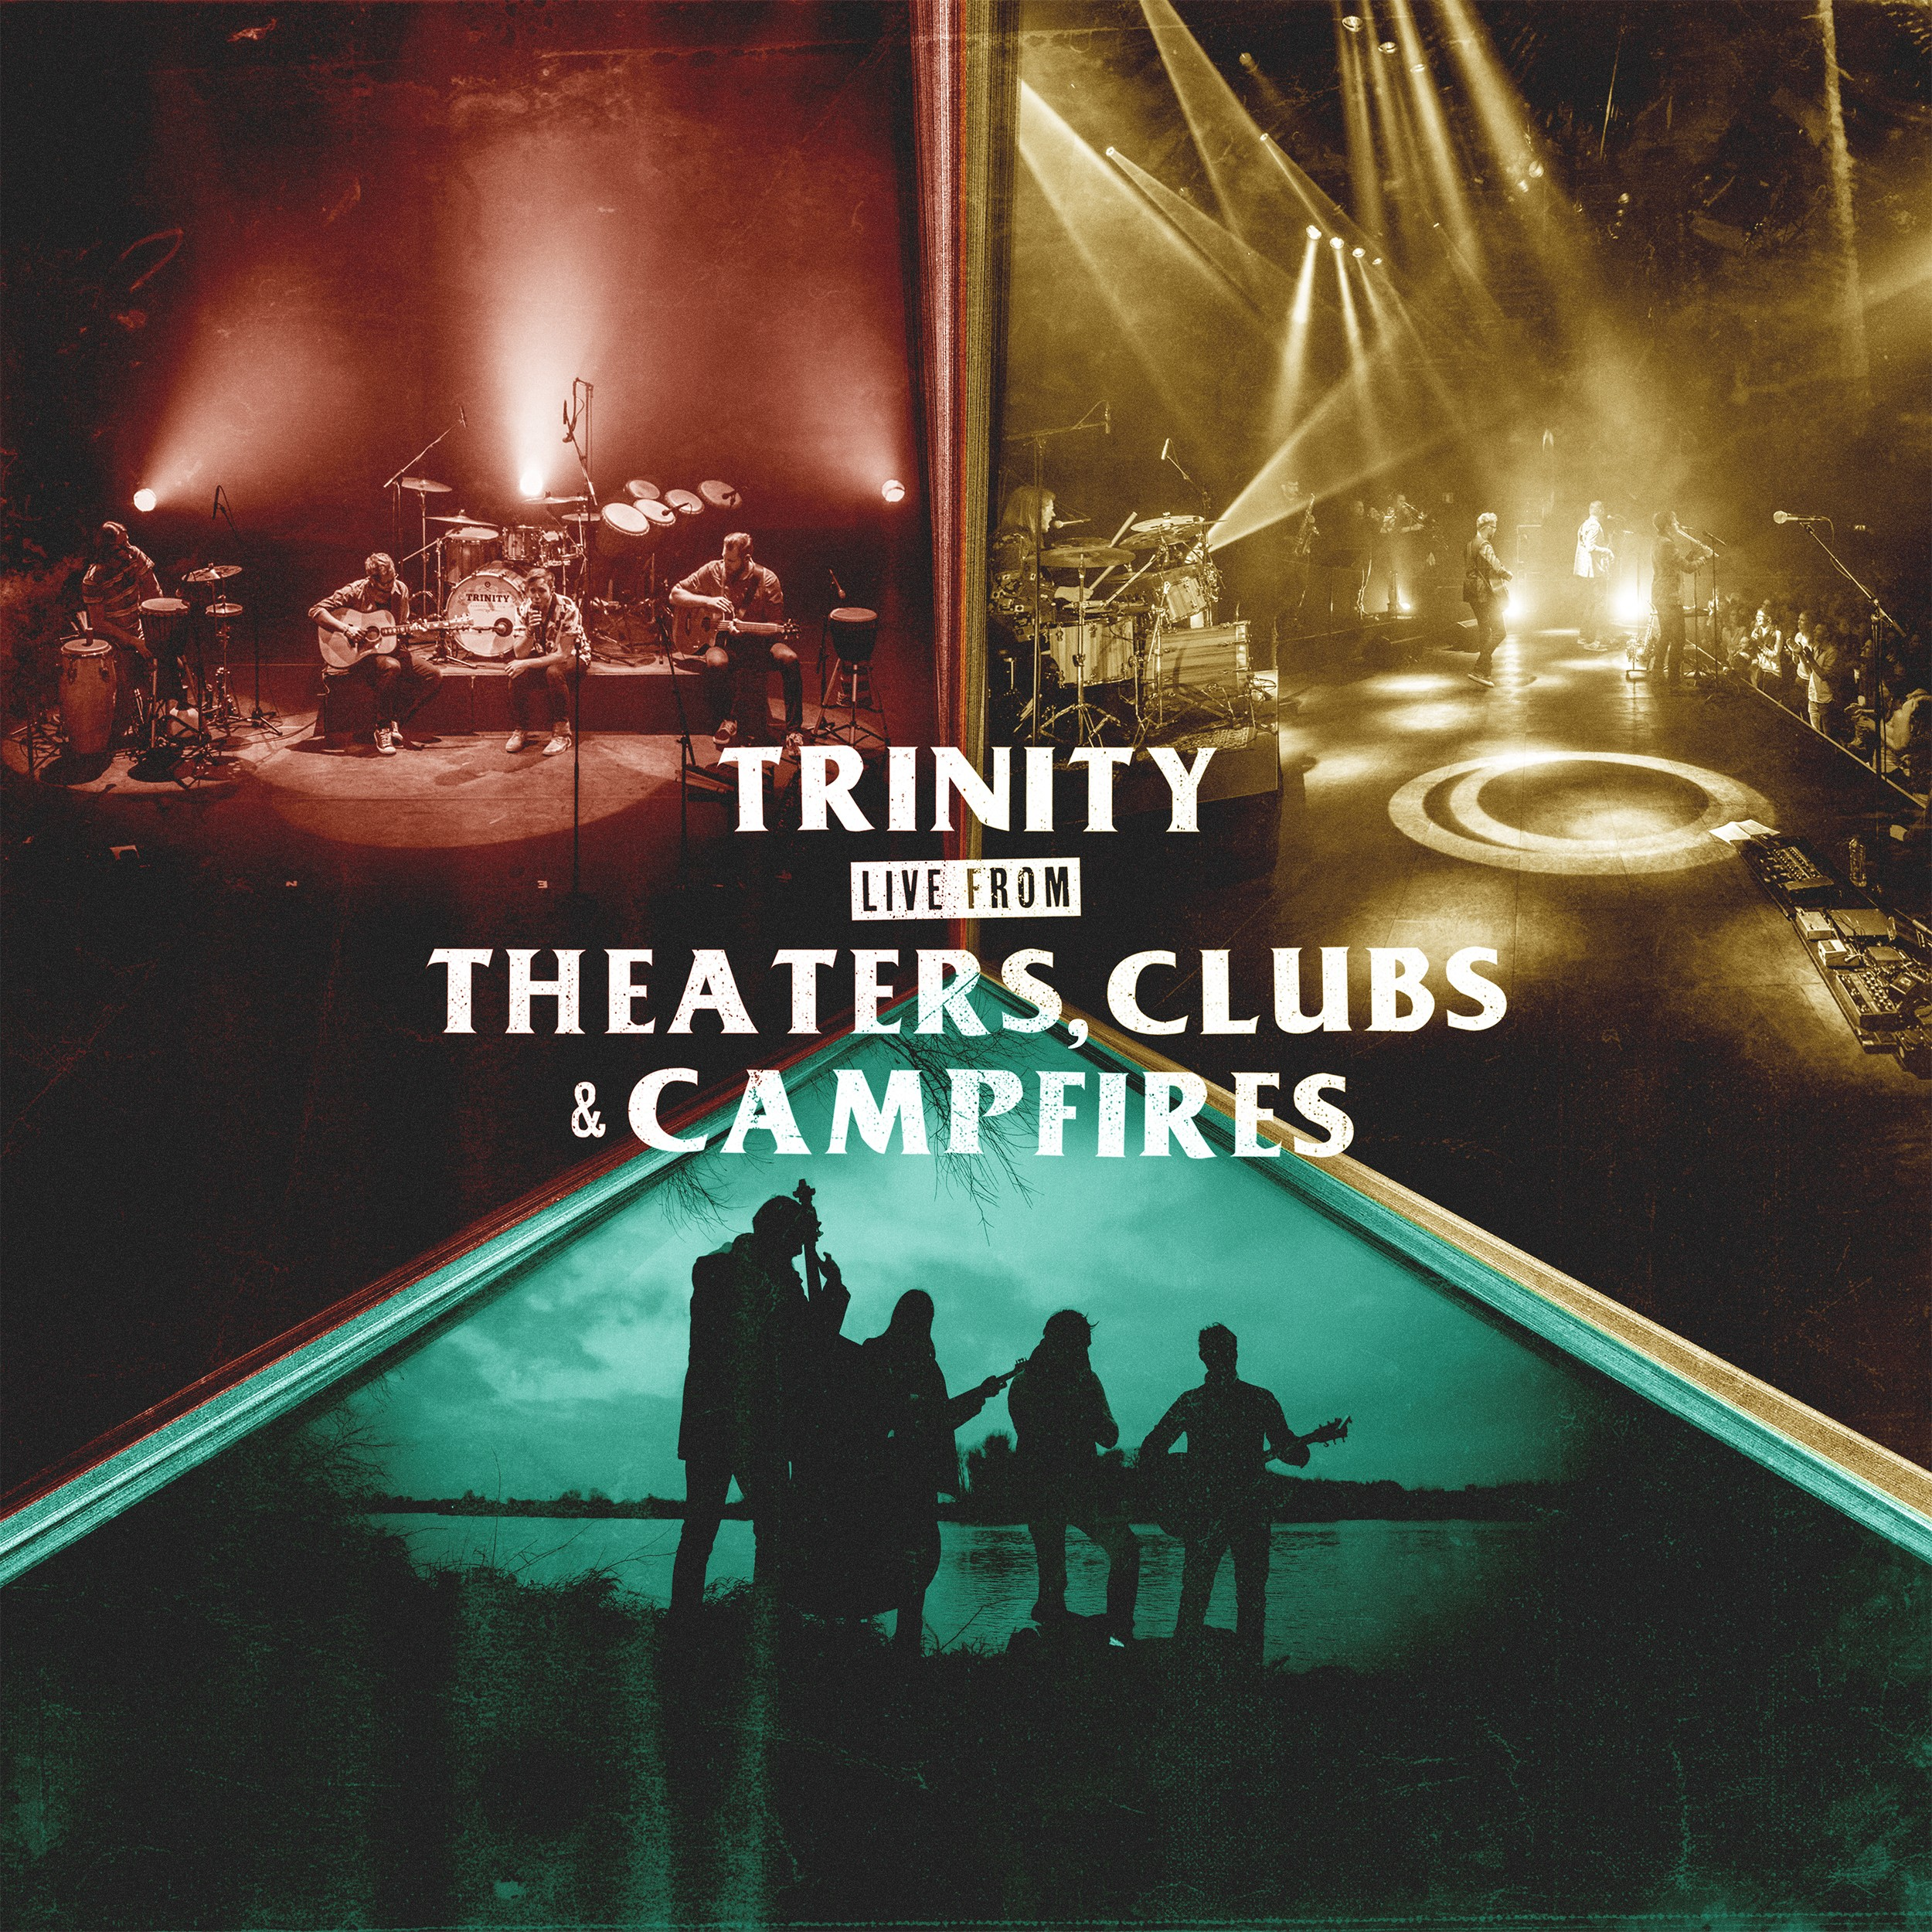 Trinity - Live From Theaters, Clubs & Campfires